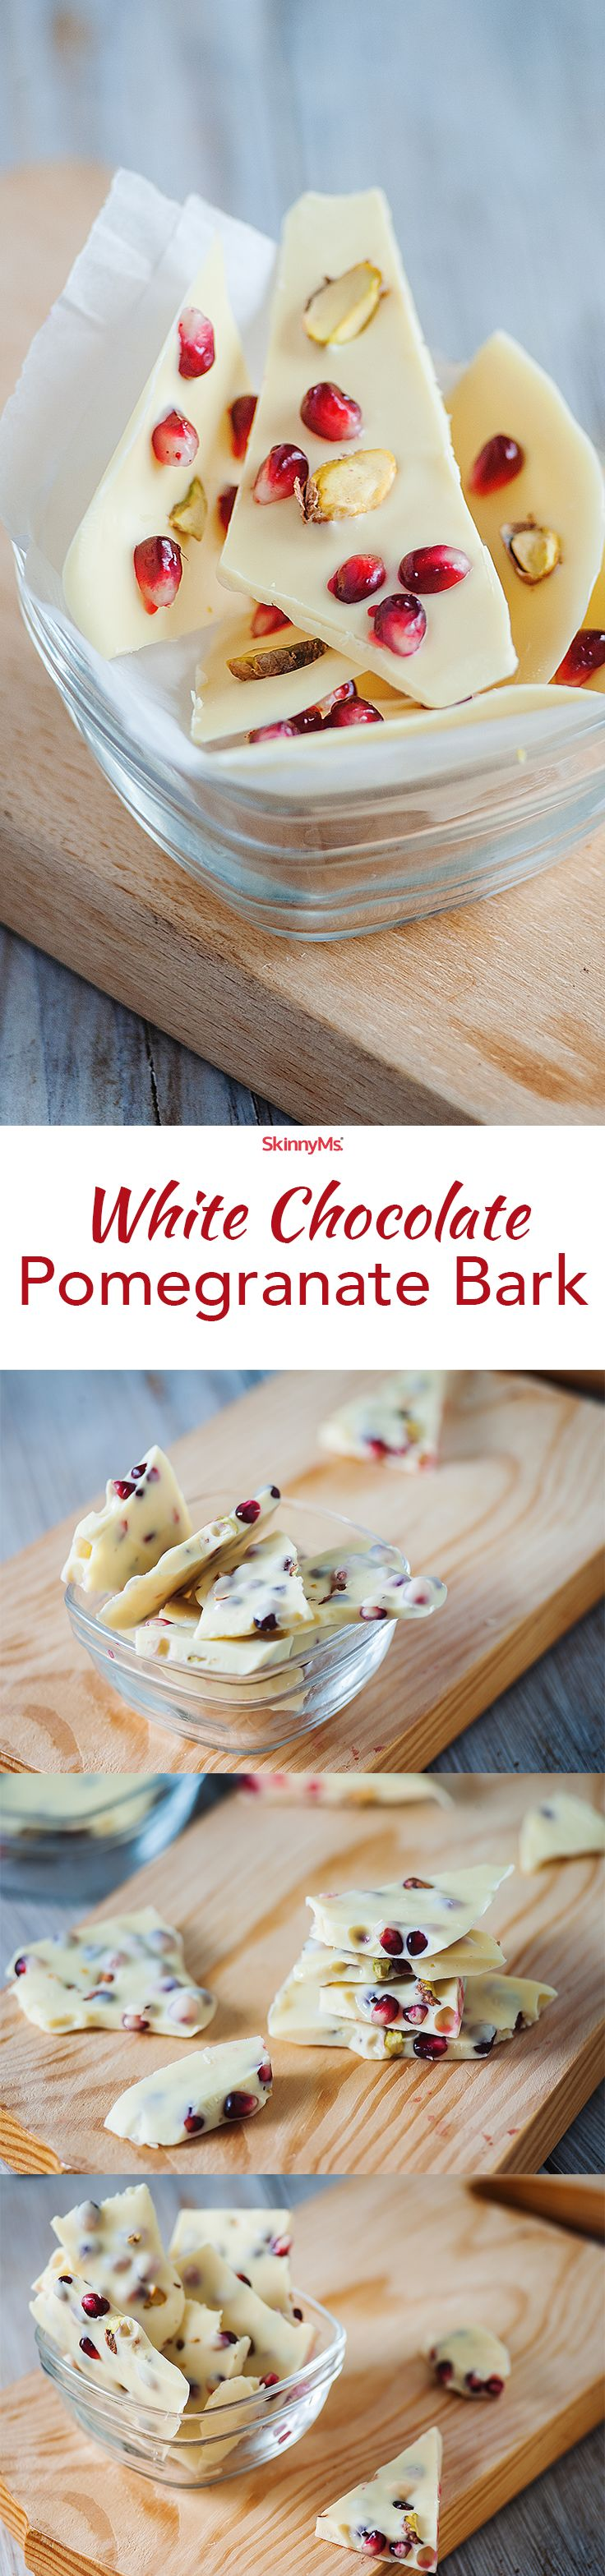 If you're a fan of white chocolate, you'll LOVE our White Chocolate Pomegranate Bark. Super easy to make and it's so addicting. :) Try it tonight!